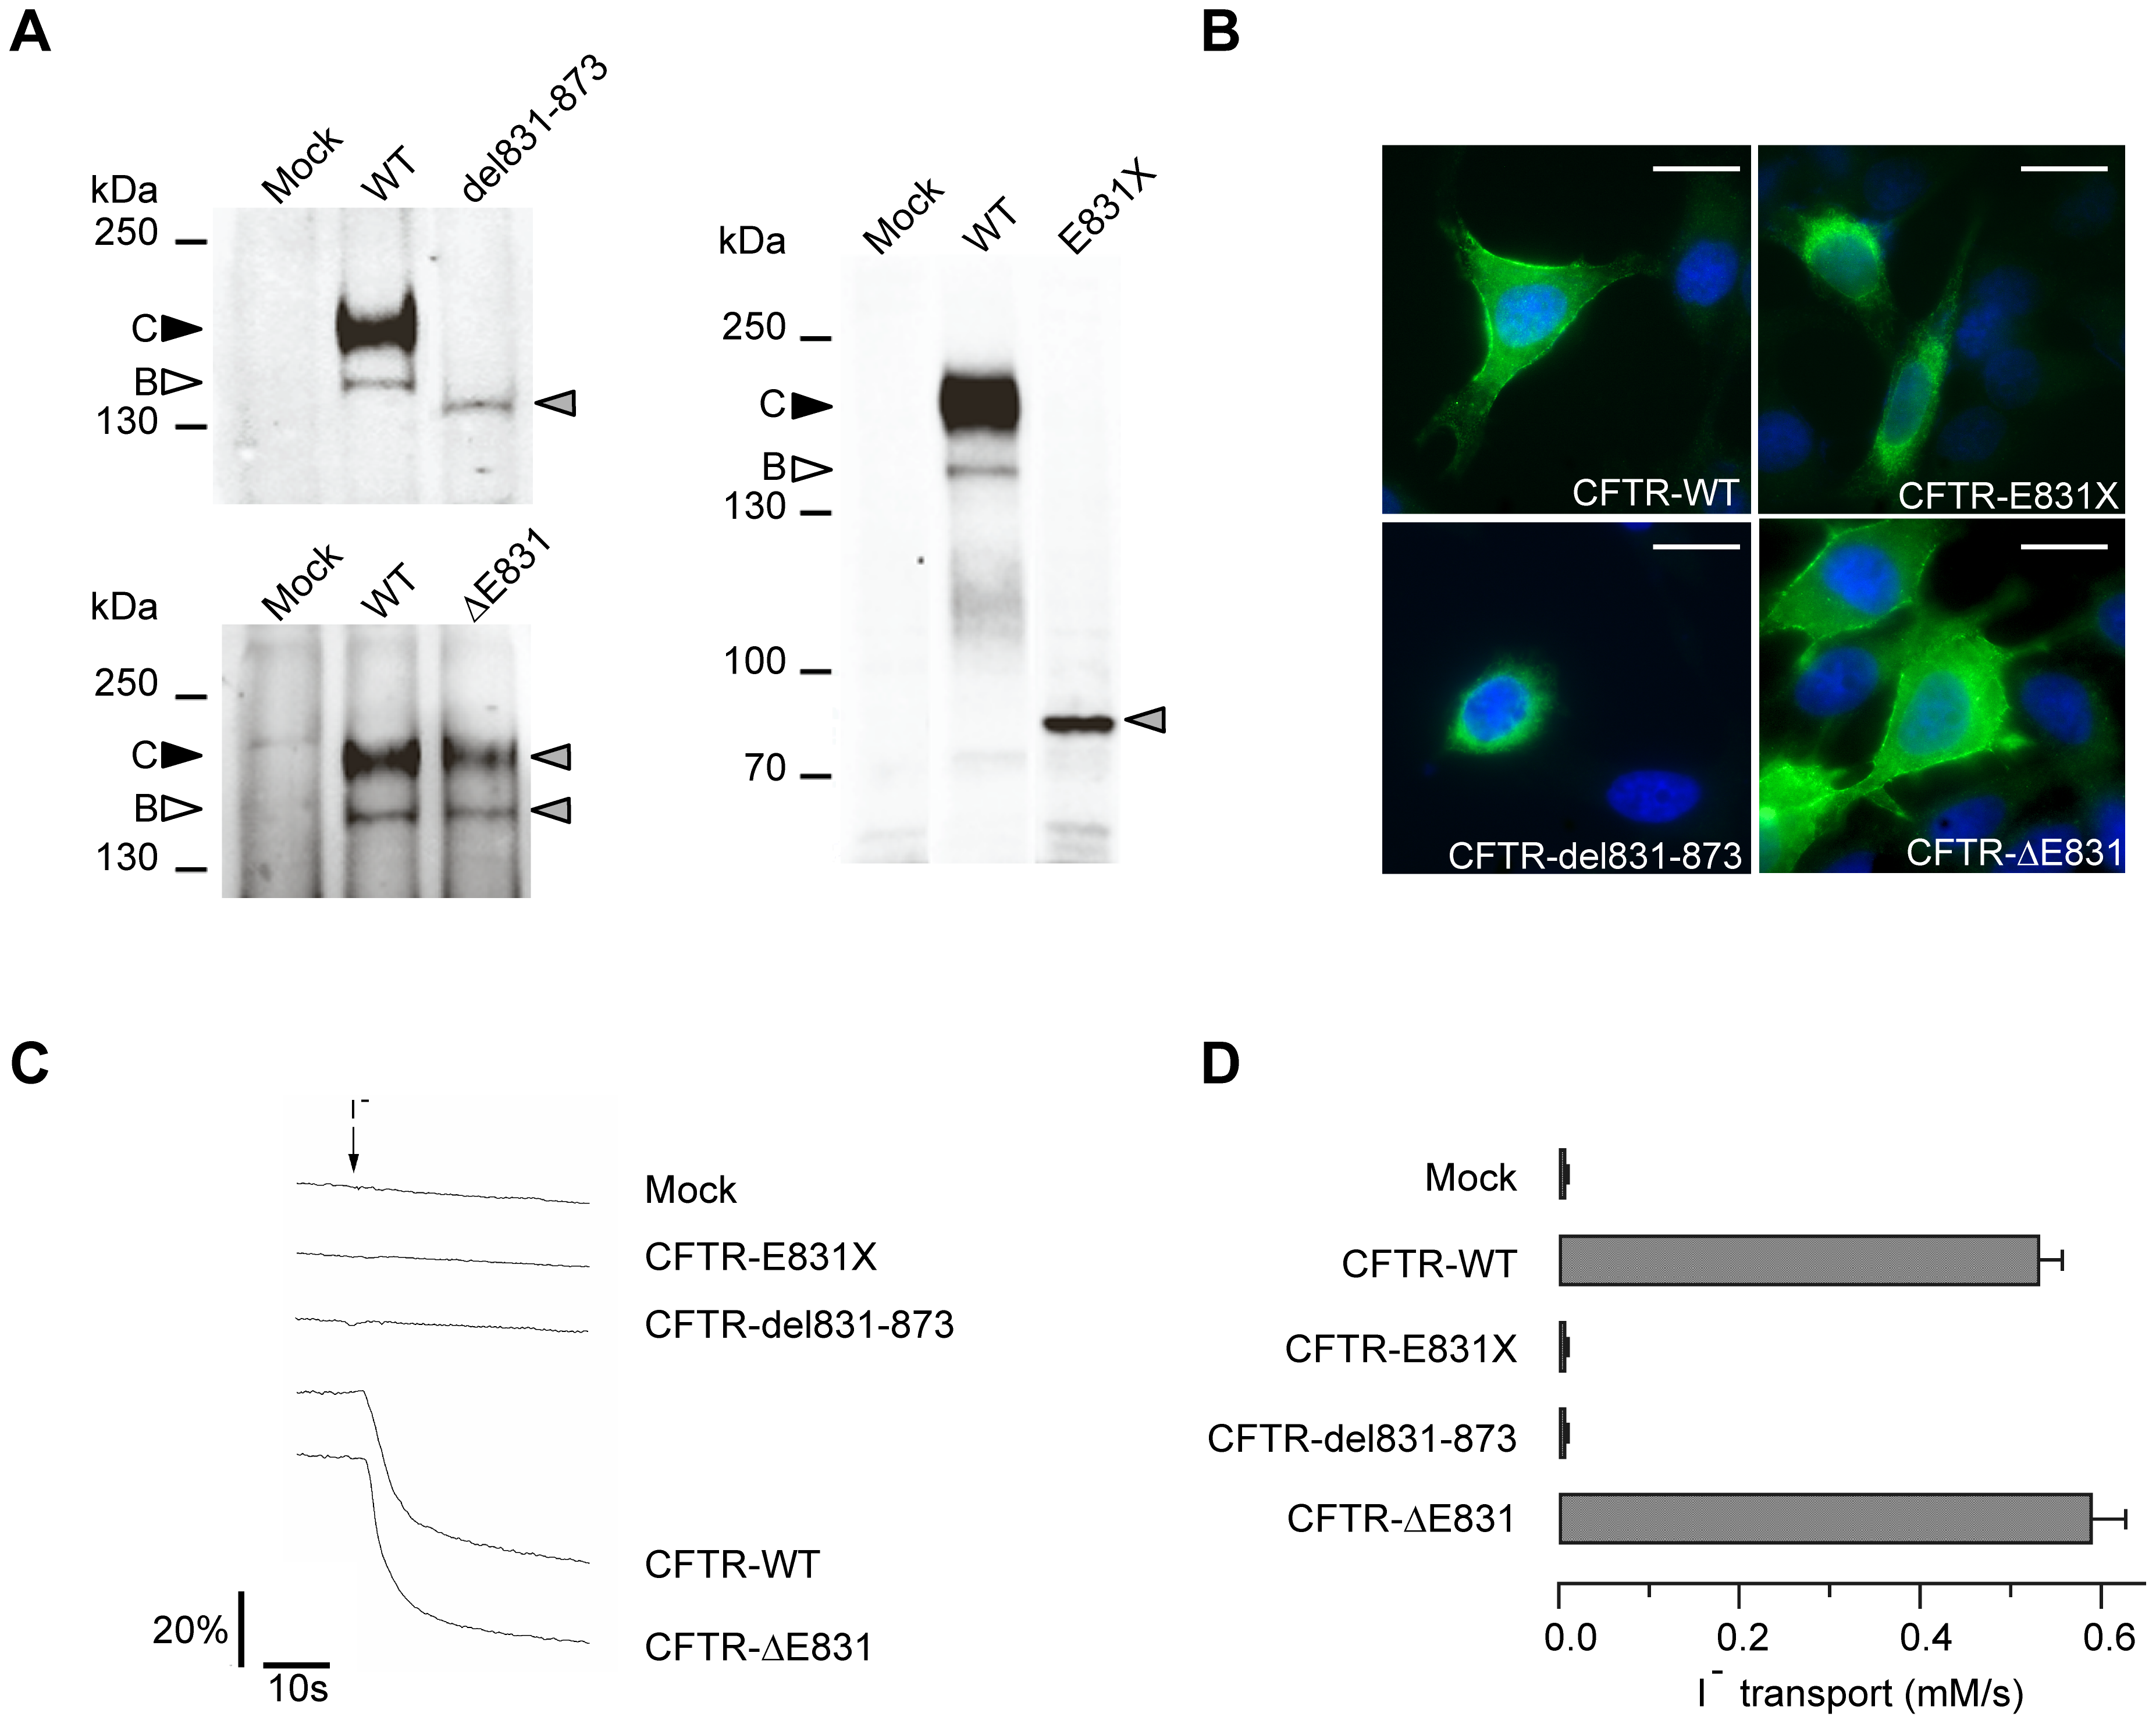 Characterization of the three CFTR mutant proteins.